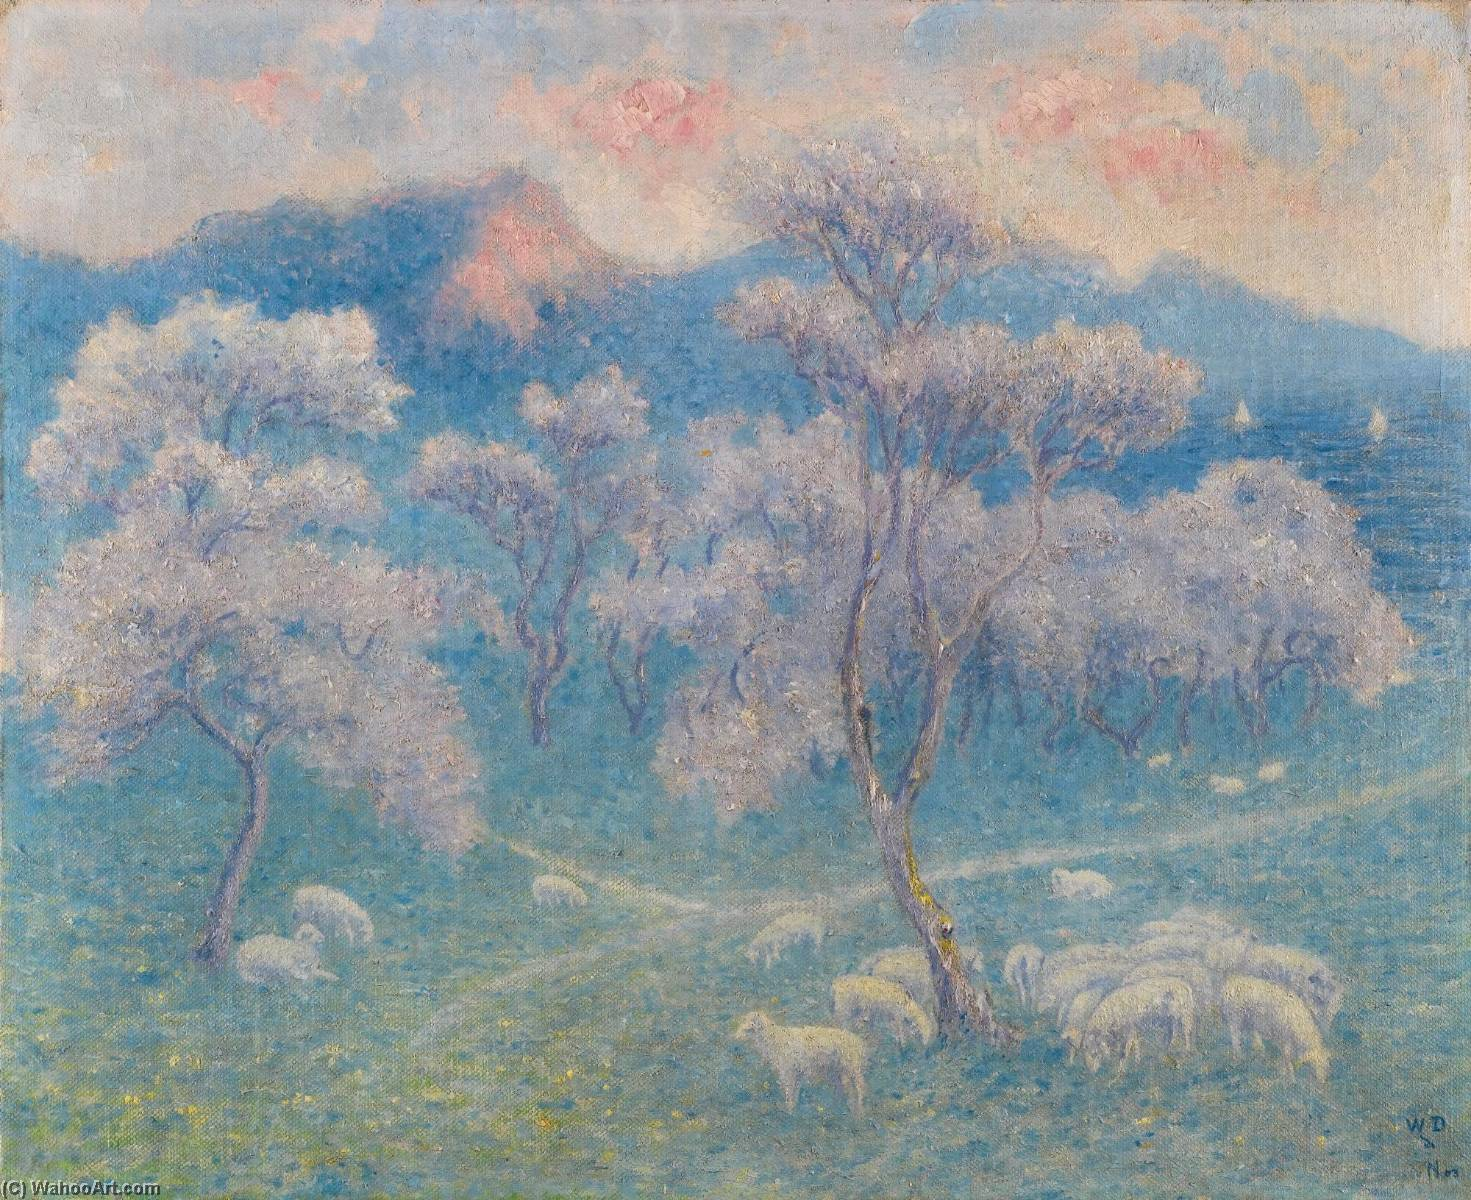 Moutons 奥克斯 amandiers酒店 通过 William Degouve De Nuncques (1867-1935) | 手工油畫 William Degouve De Nuncques | ArtsDot.com